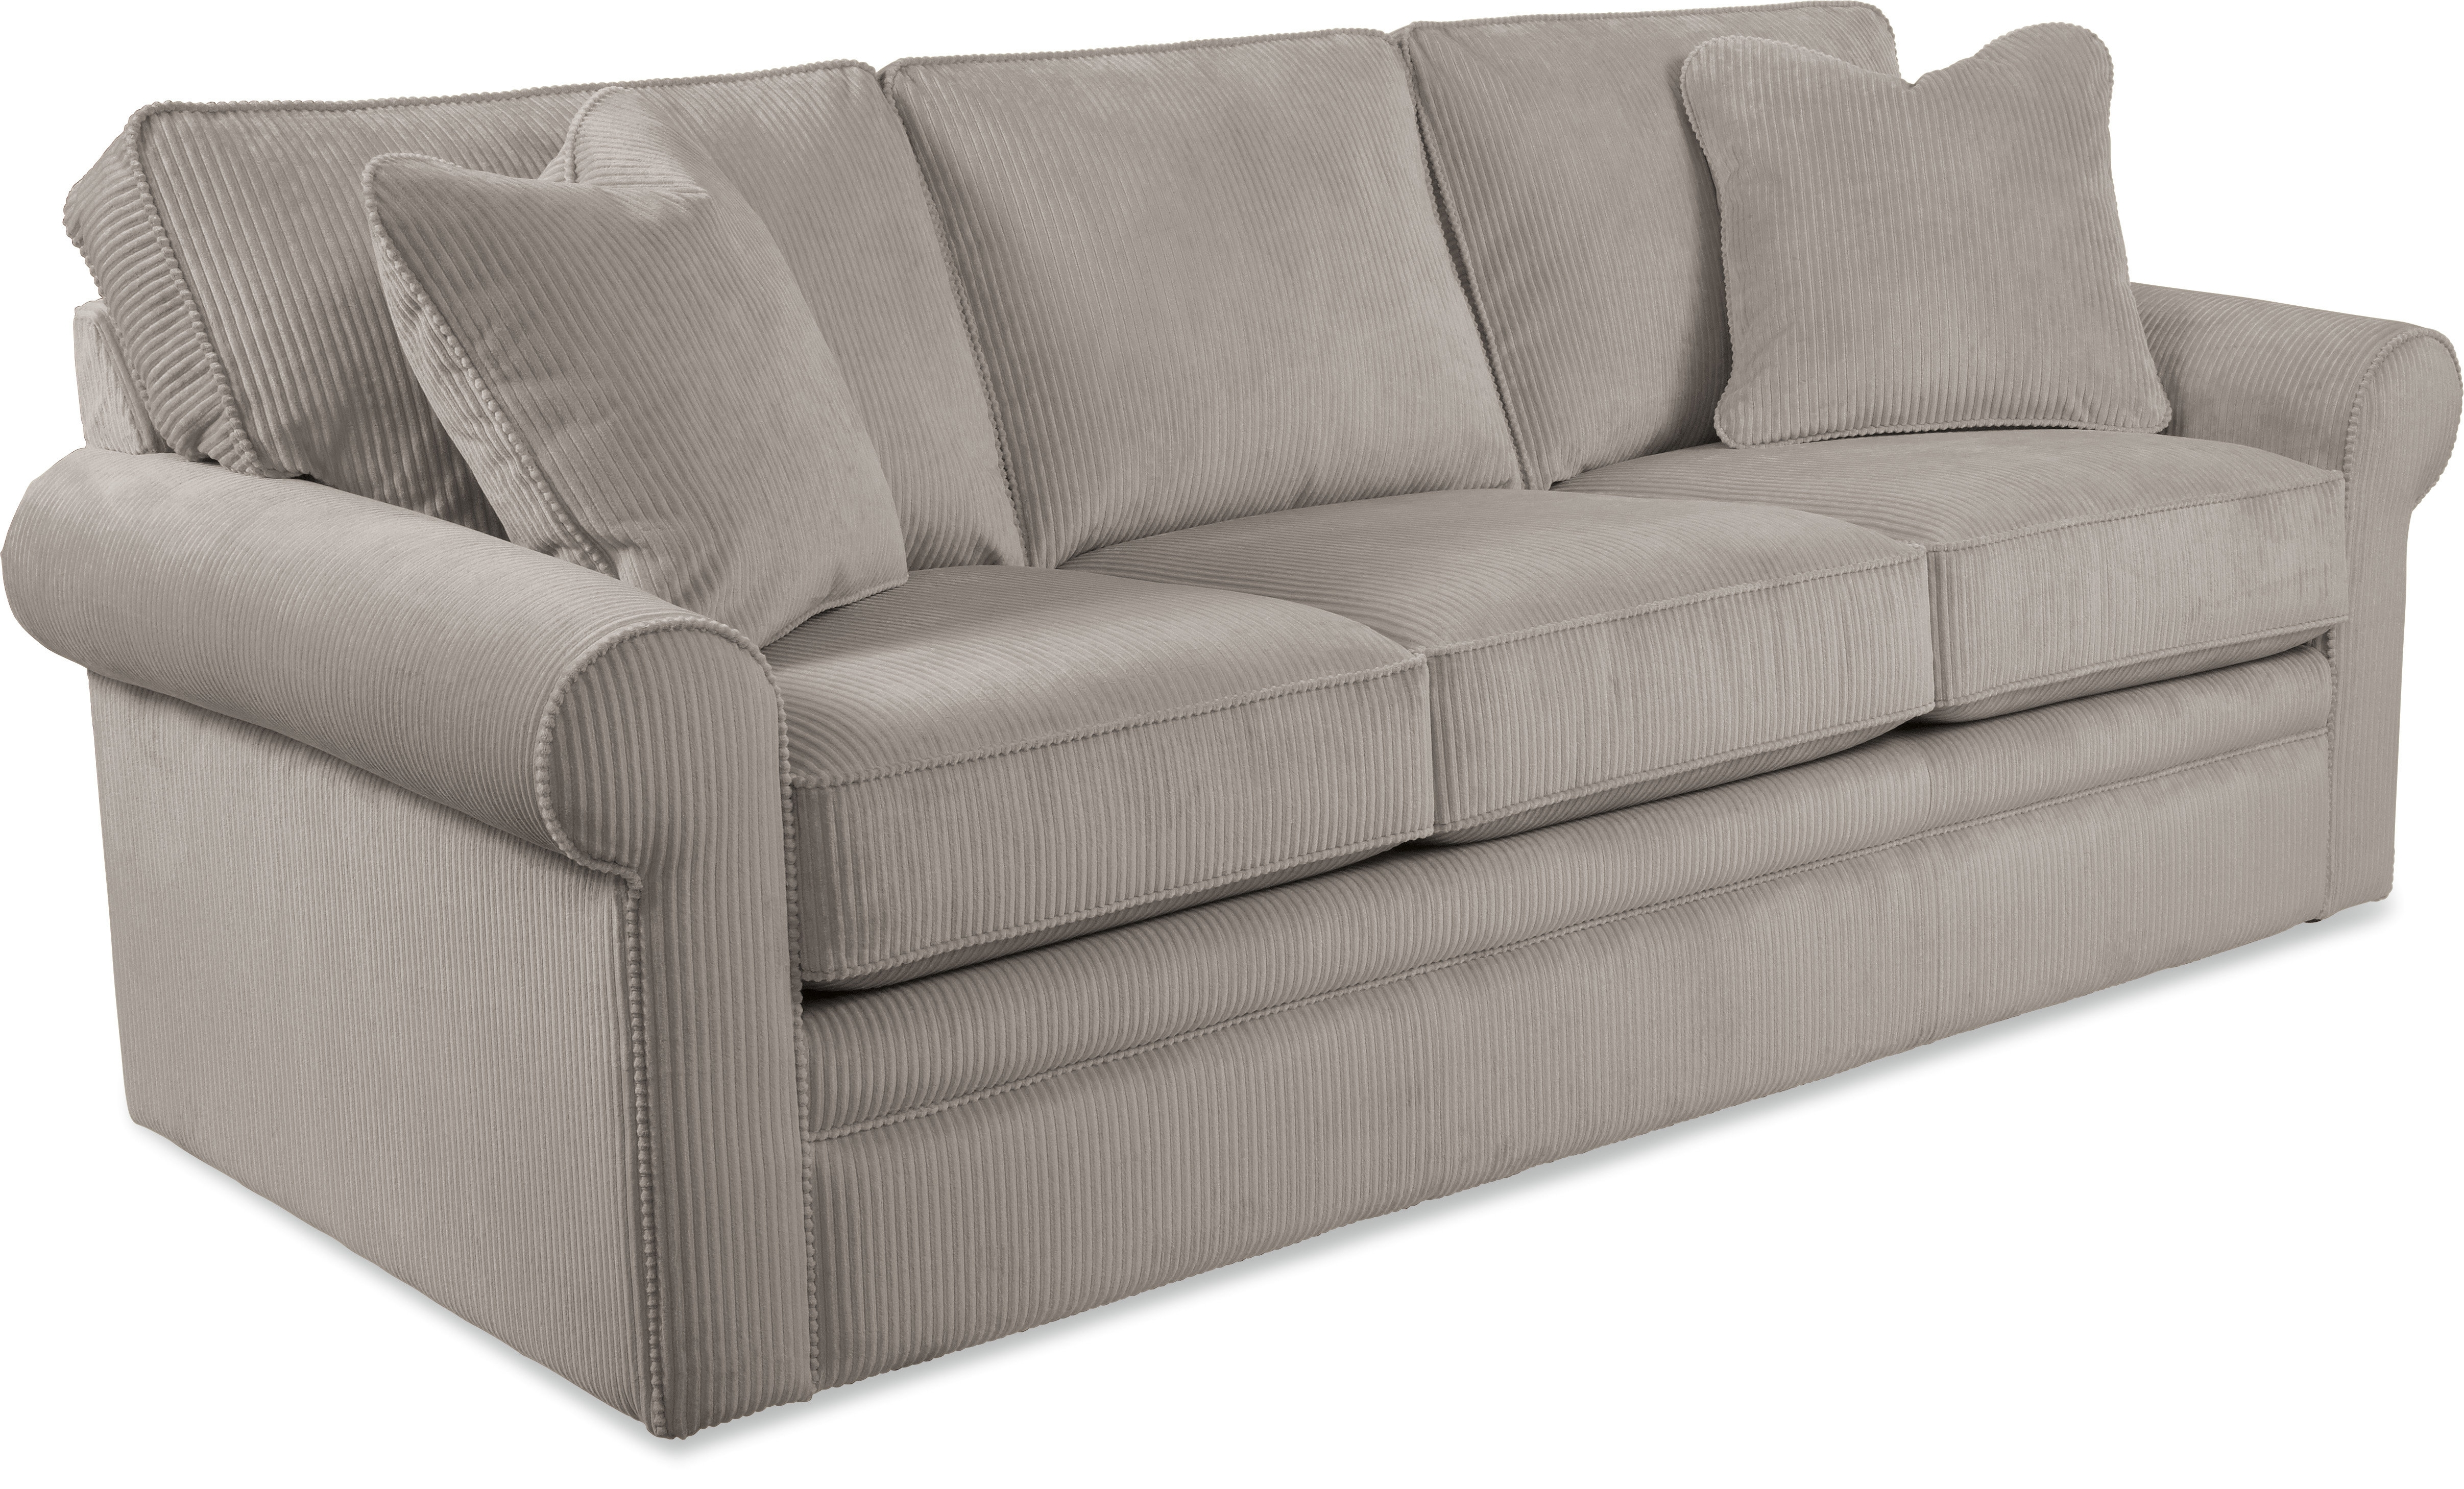 La-Z-Boy Collins Premier Sofa & Reviews | Wayfair intended for Collins Sofa Sectionals With Reversible Chaise (Image 17 of 30)